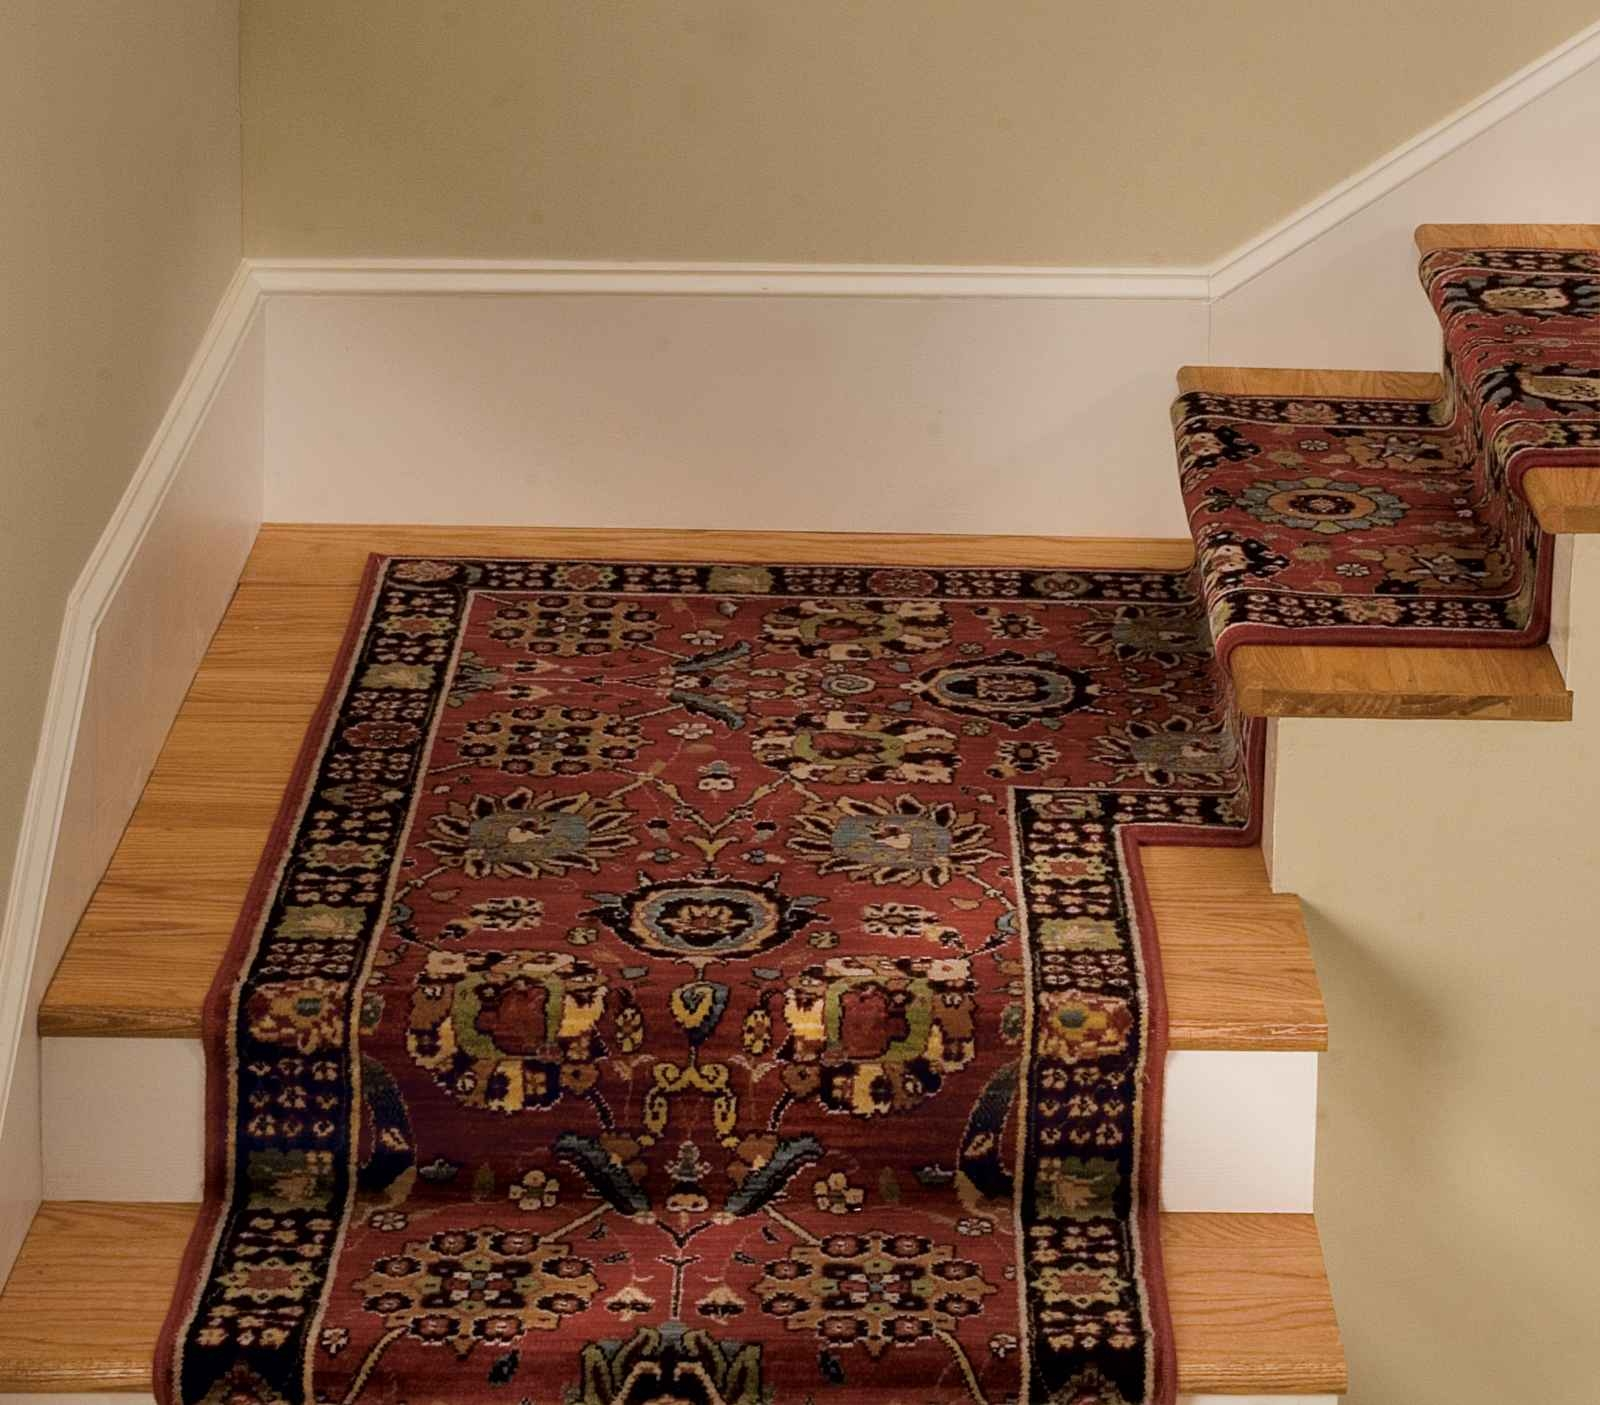 Carpet Stair Runner For Home New Home Pinterest Stair Treads Inside Stair Treads And Matching Rugs (Image 3 of 15)